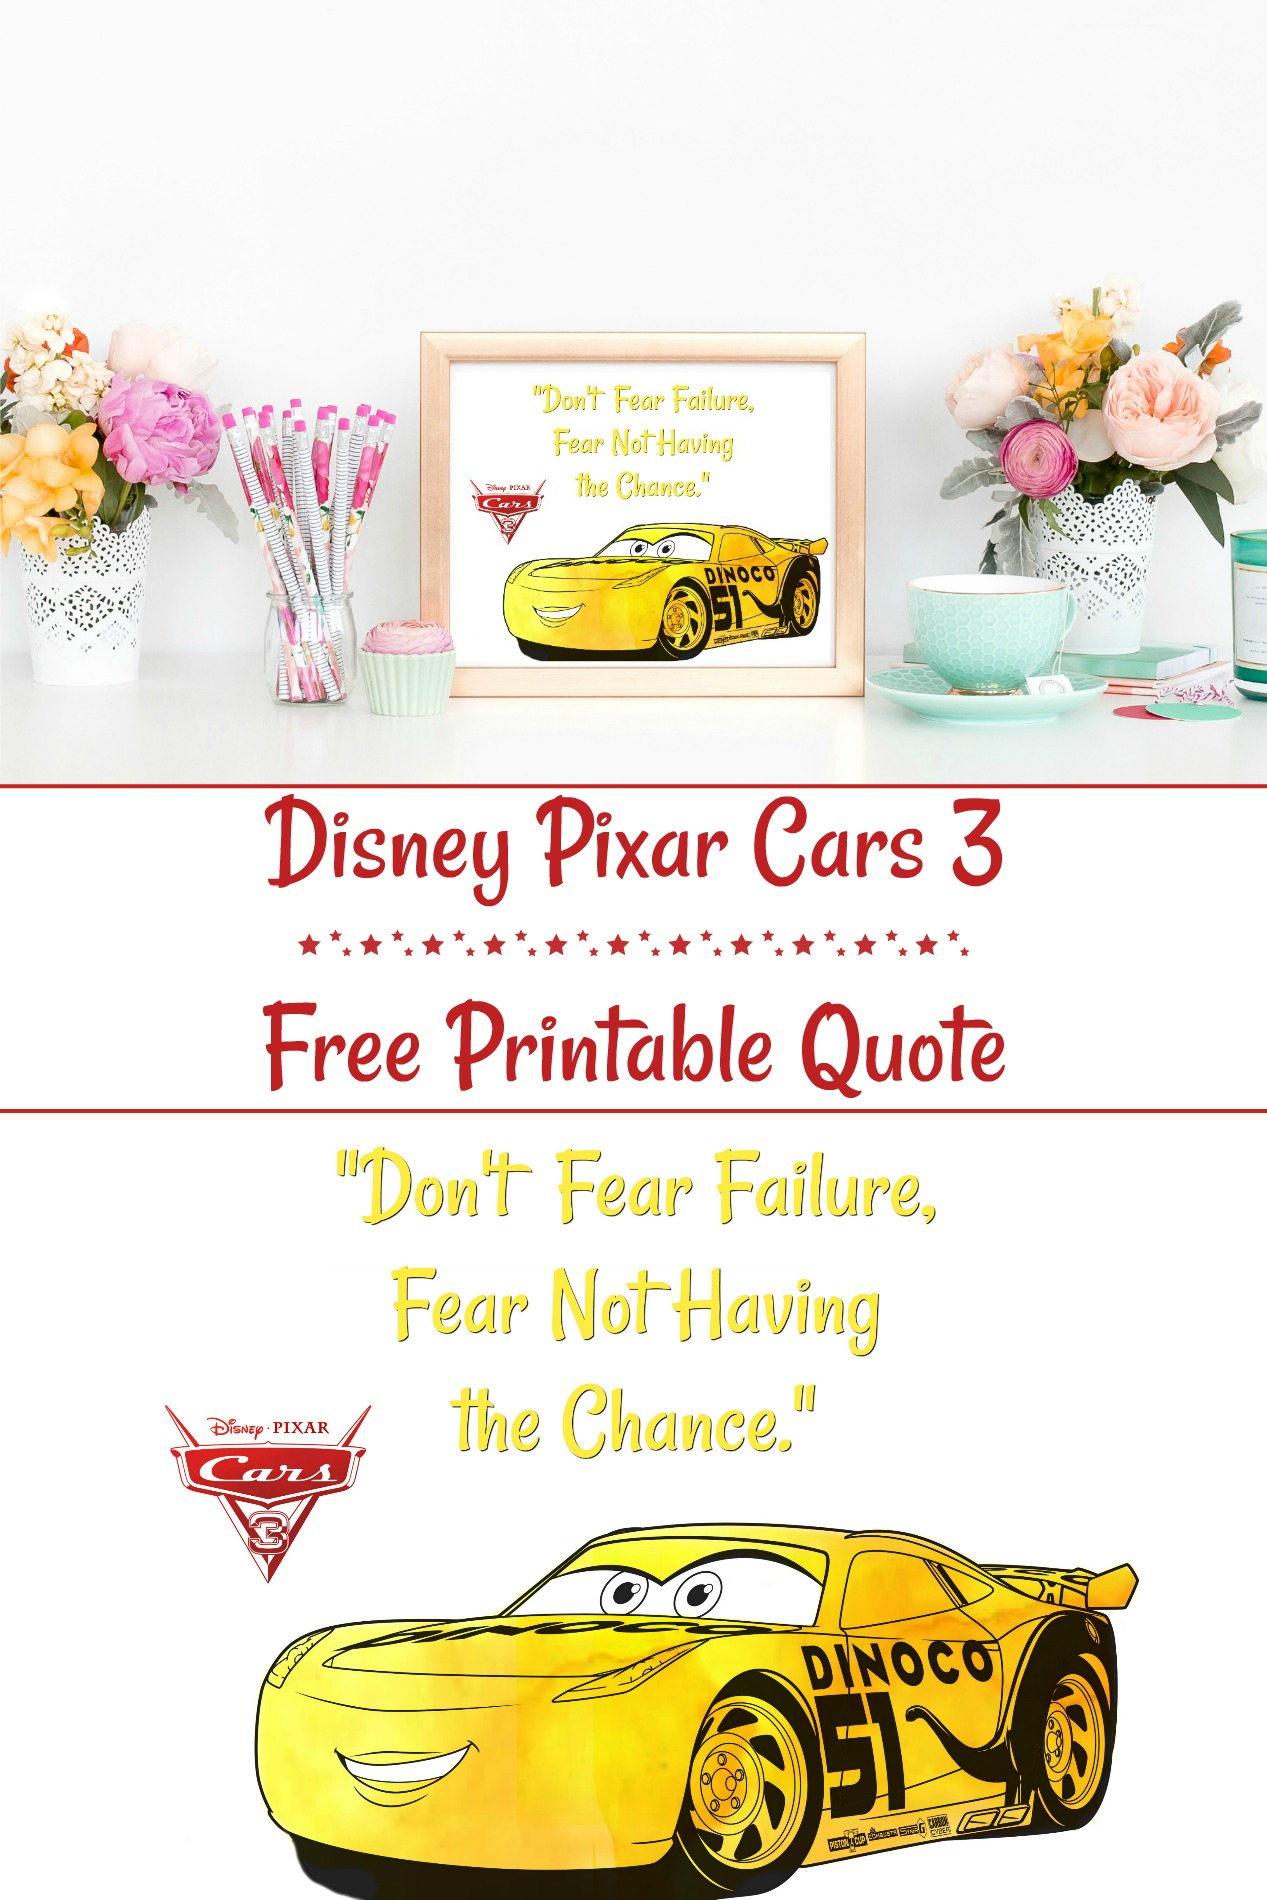 Disney Pixar Cars 3 Free Printable Quote